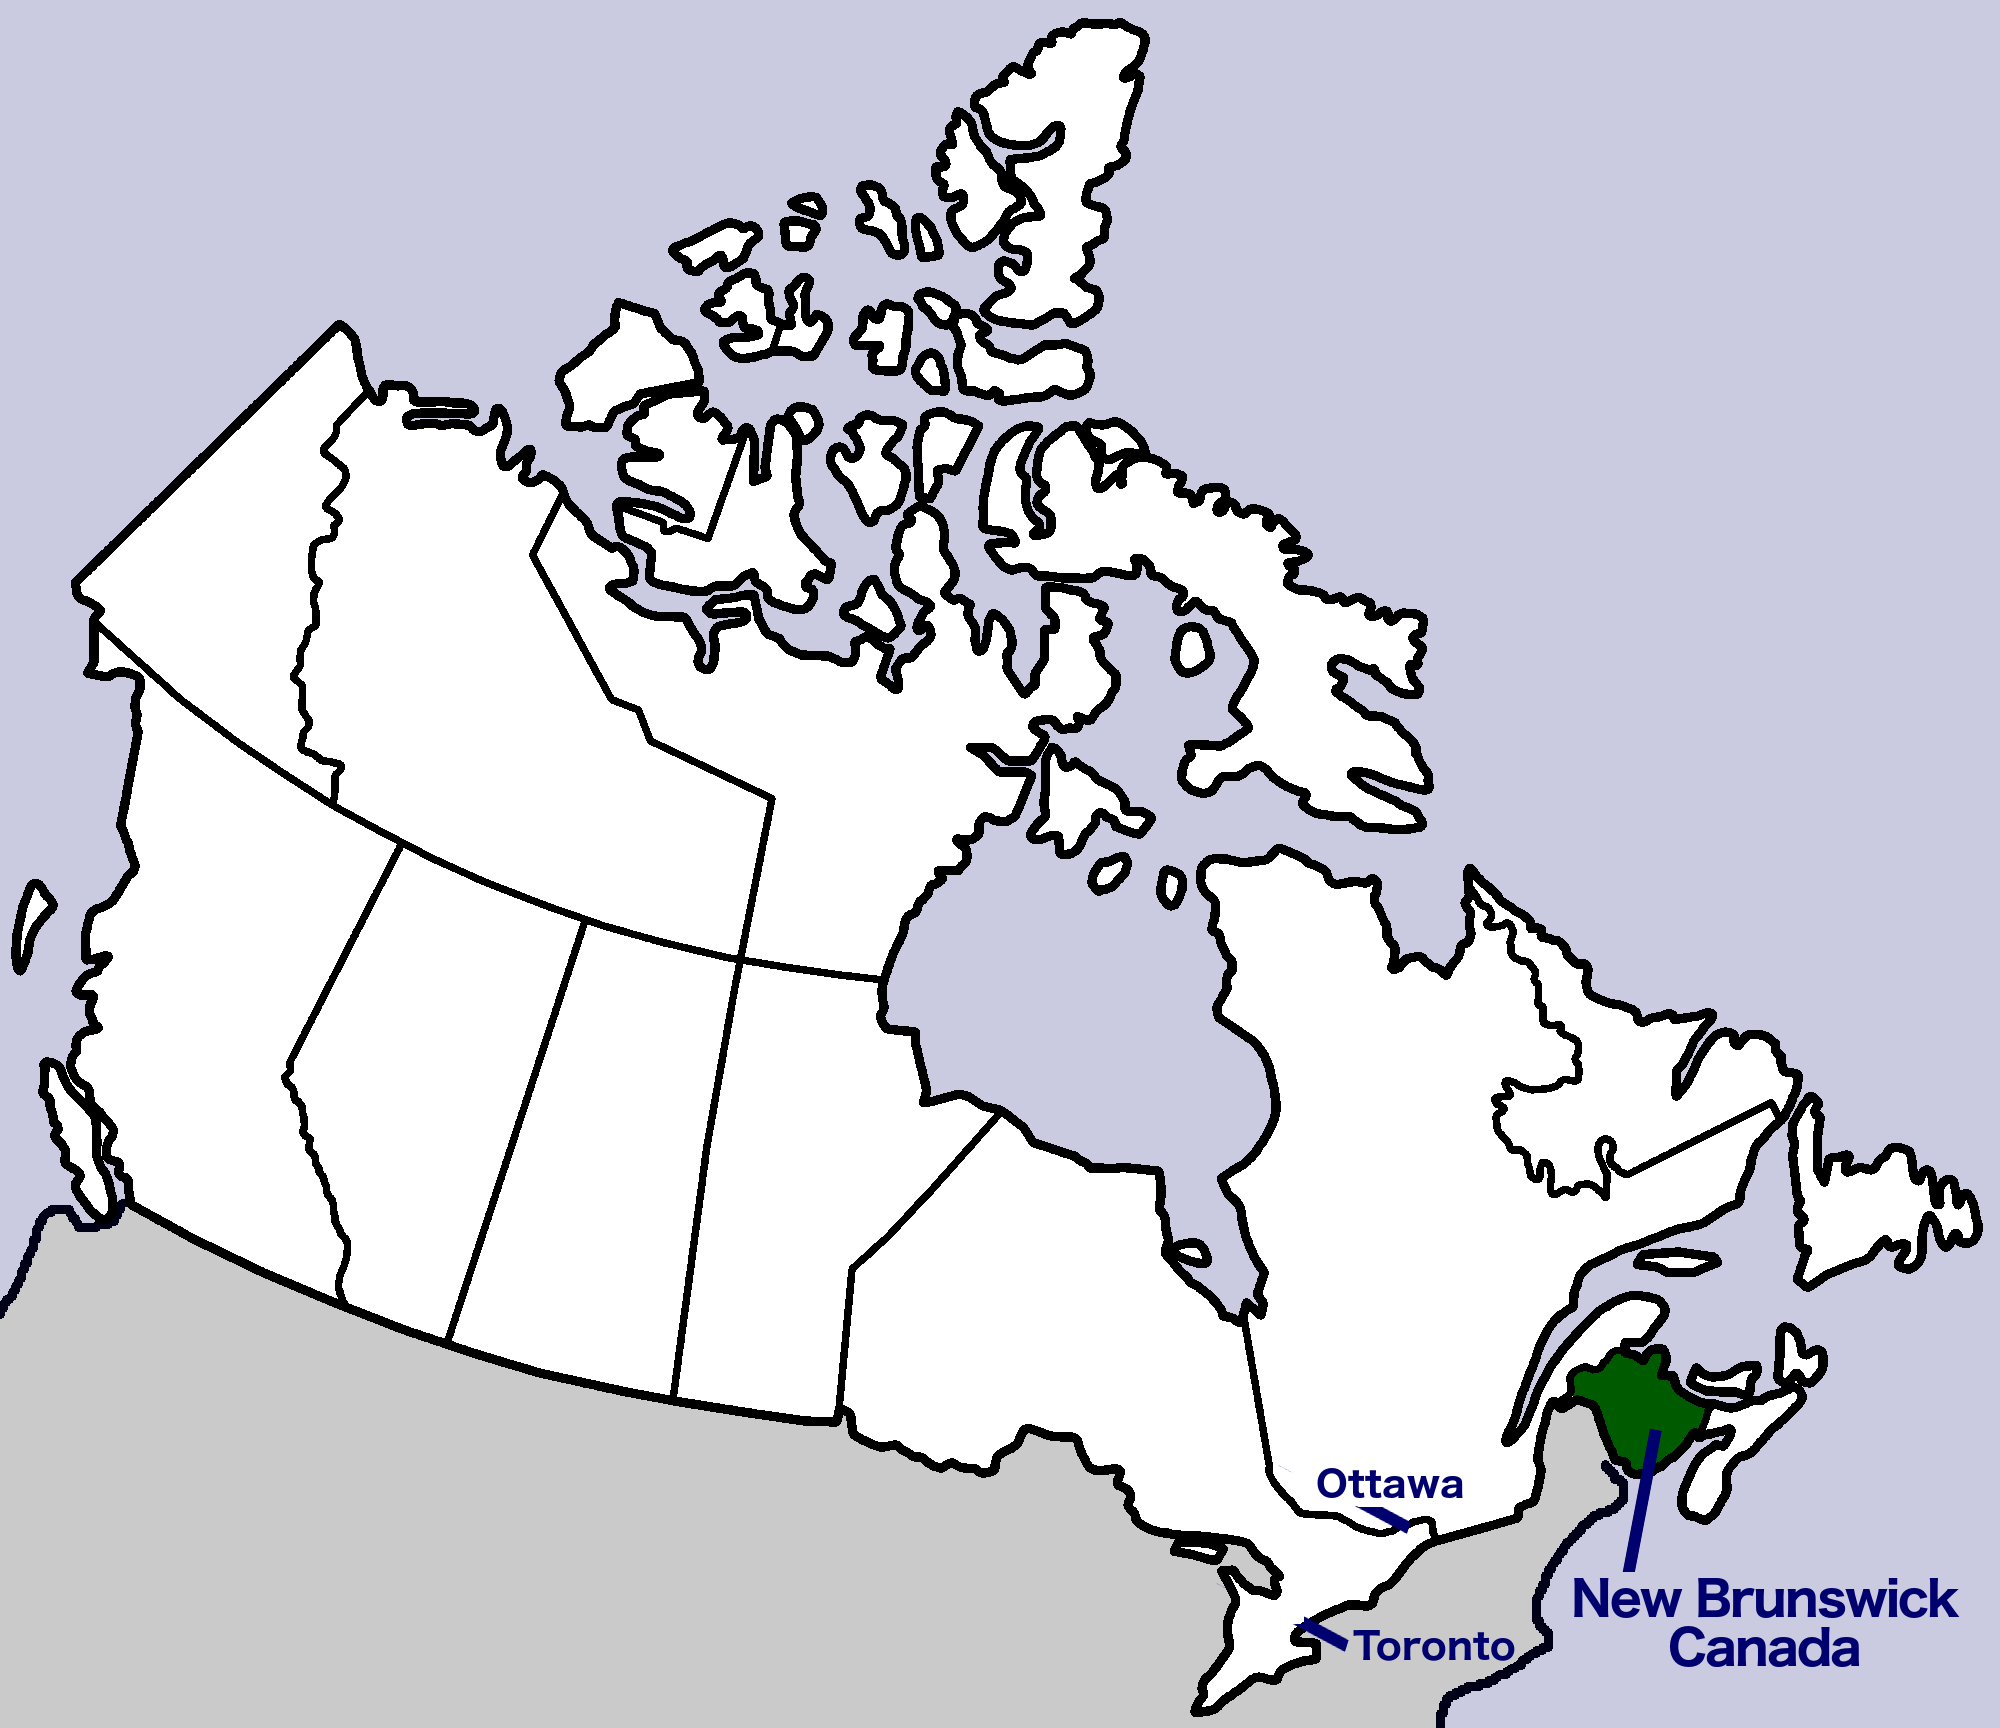 https://andreitailors.com/wp-content/uploads/2018/11/Canada-NB-Map.png